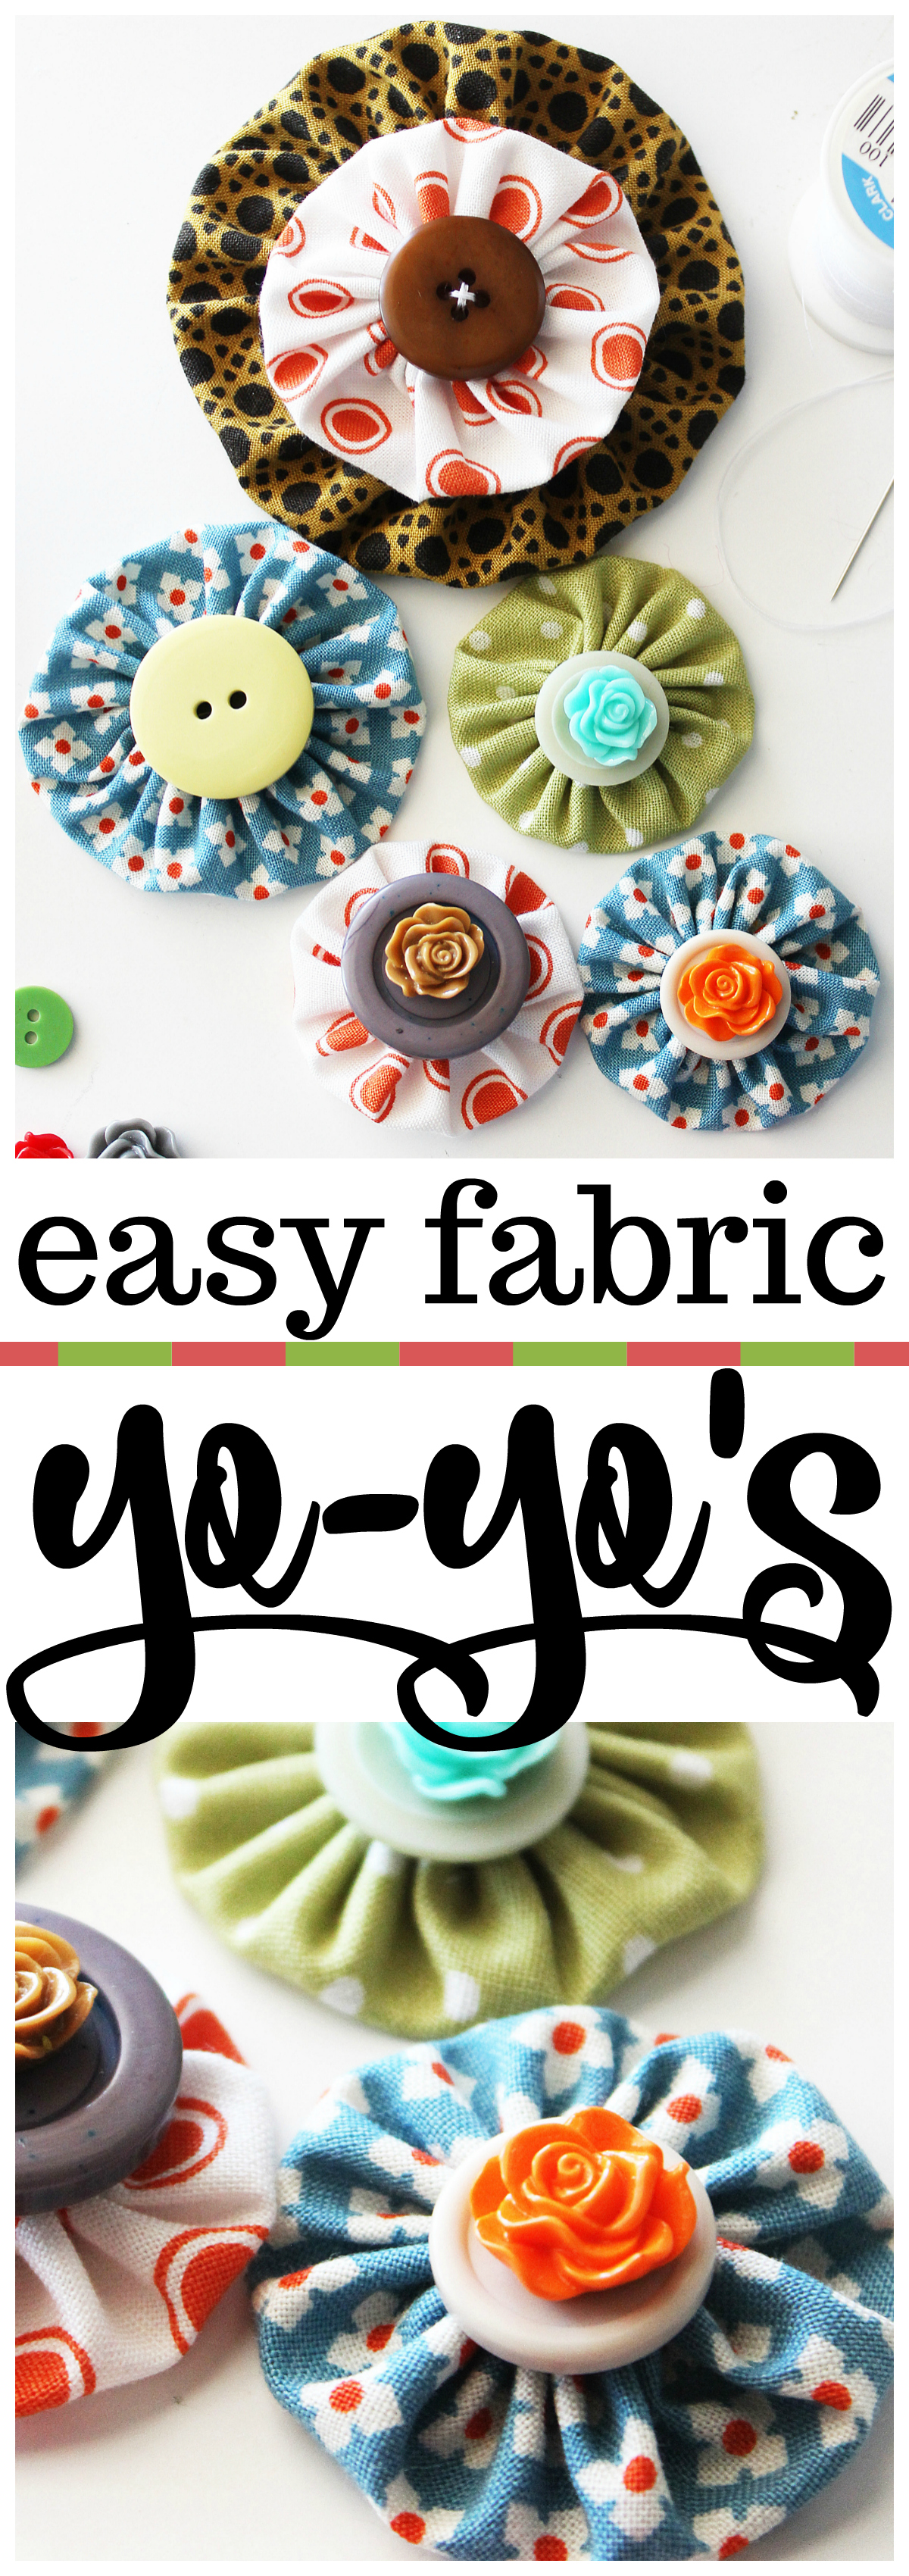 How to Make an Easy Fabric Yo-Yo